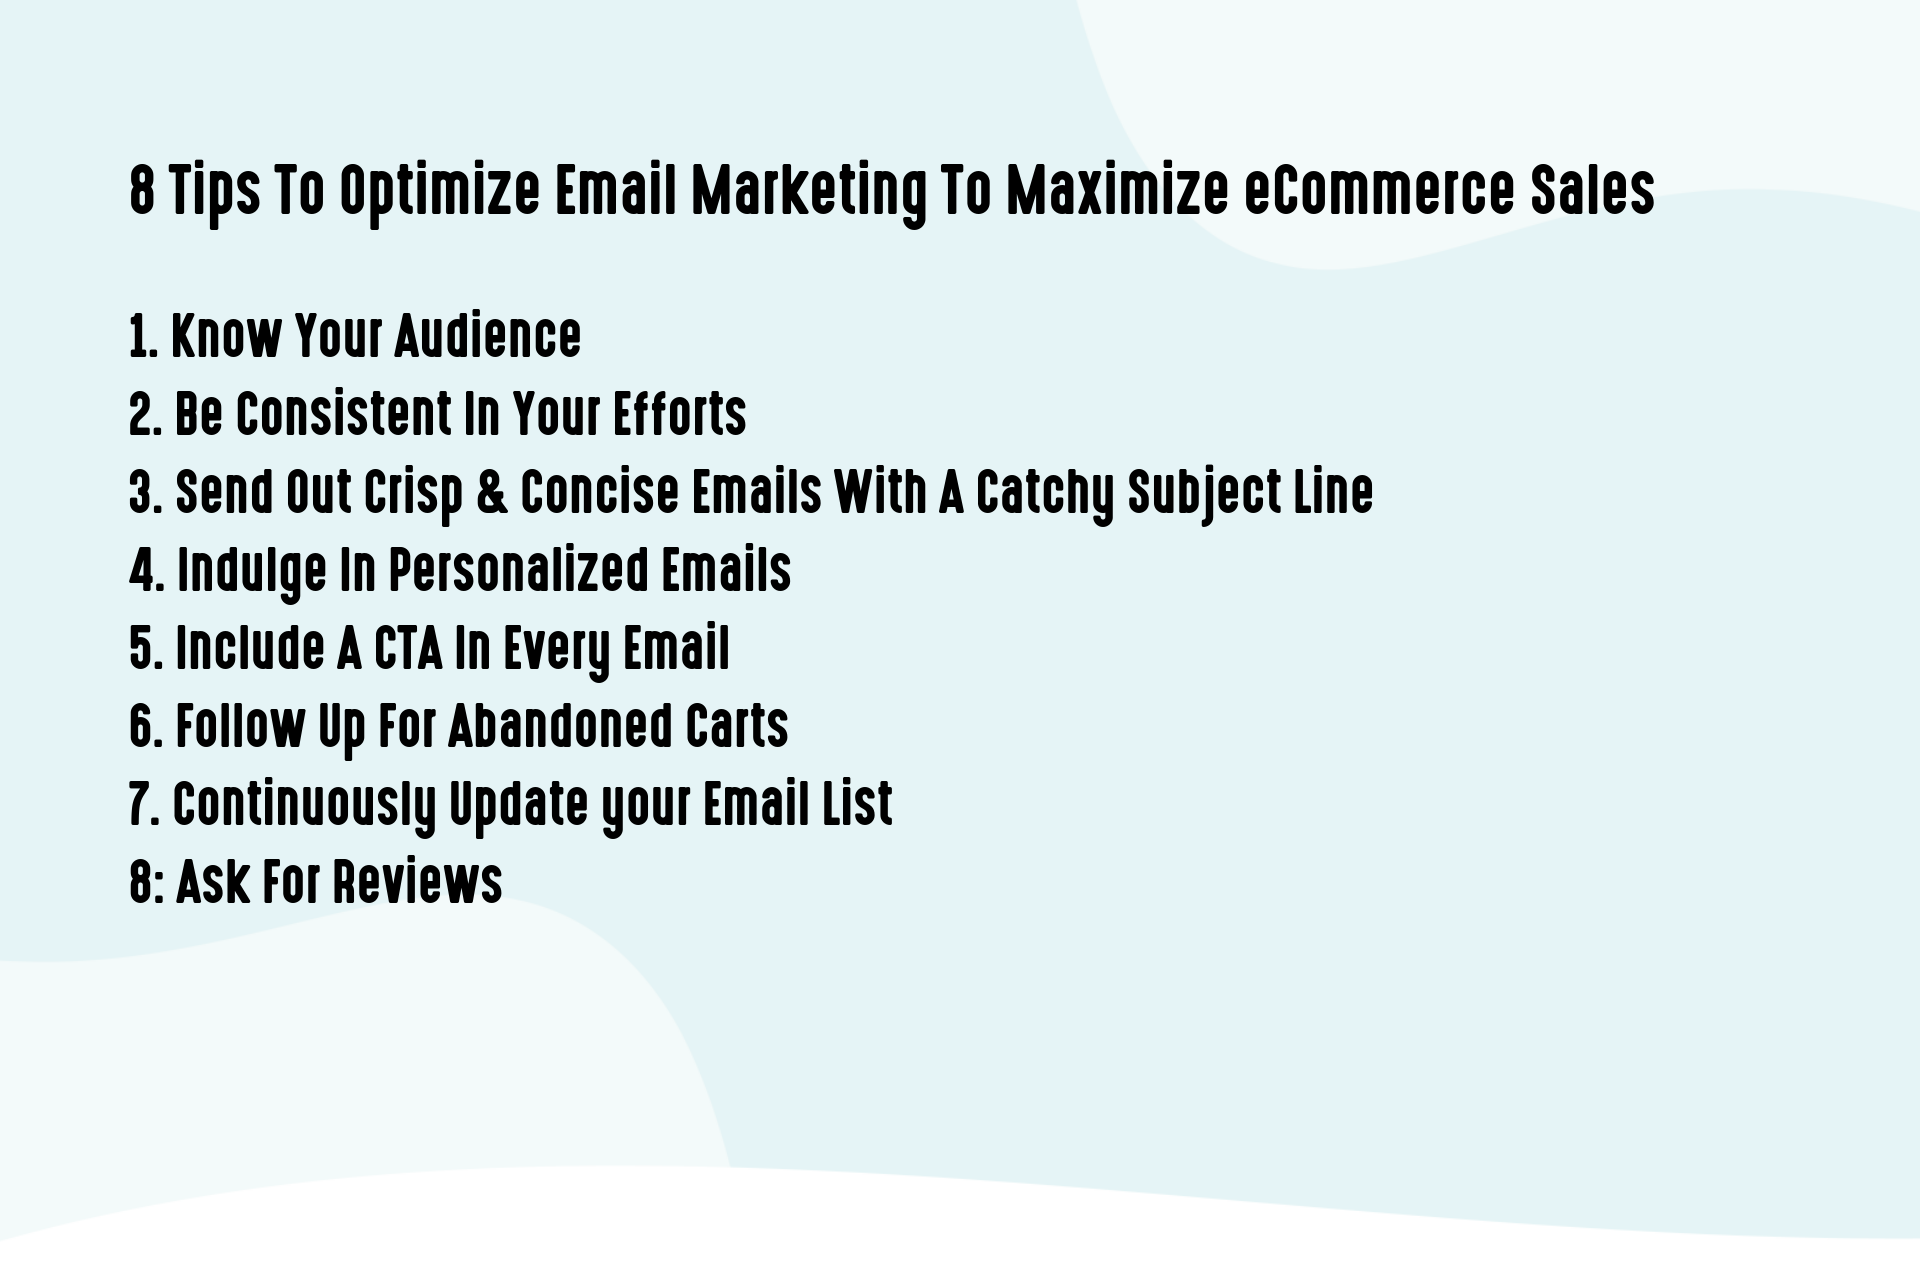 8 Tips To Optimize Email Marketing To Maximize eCommerce Sales